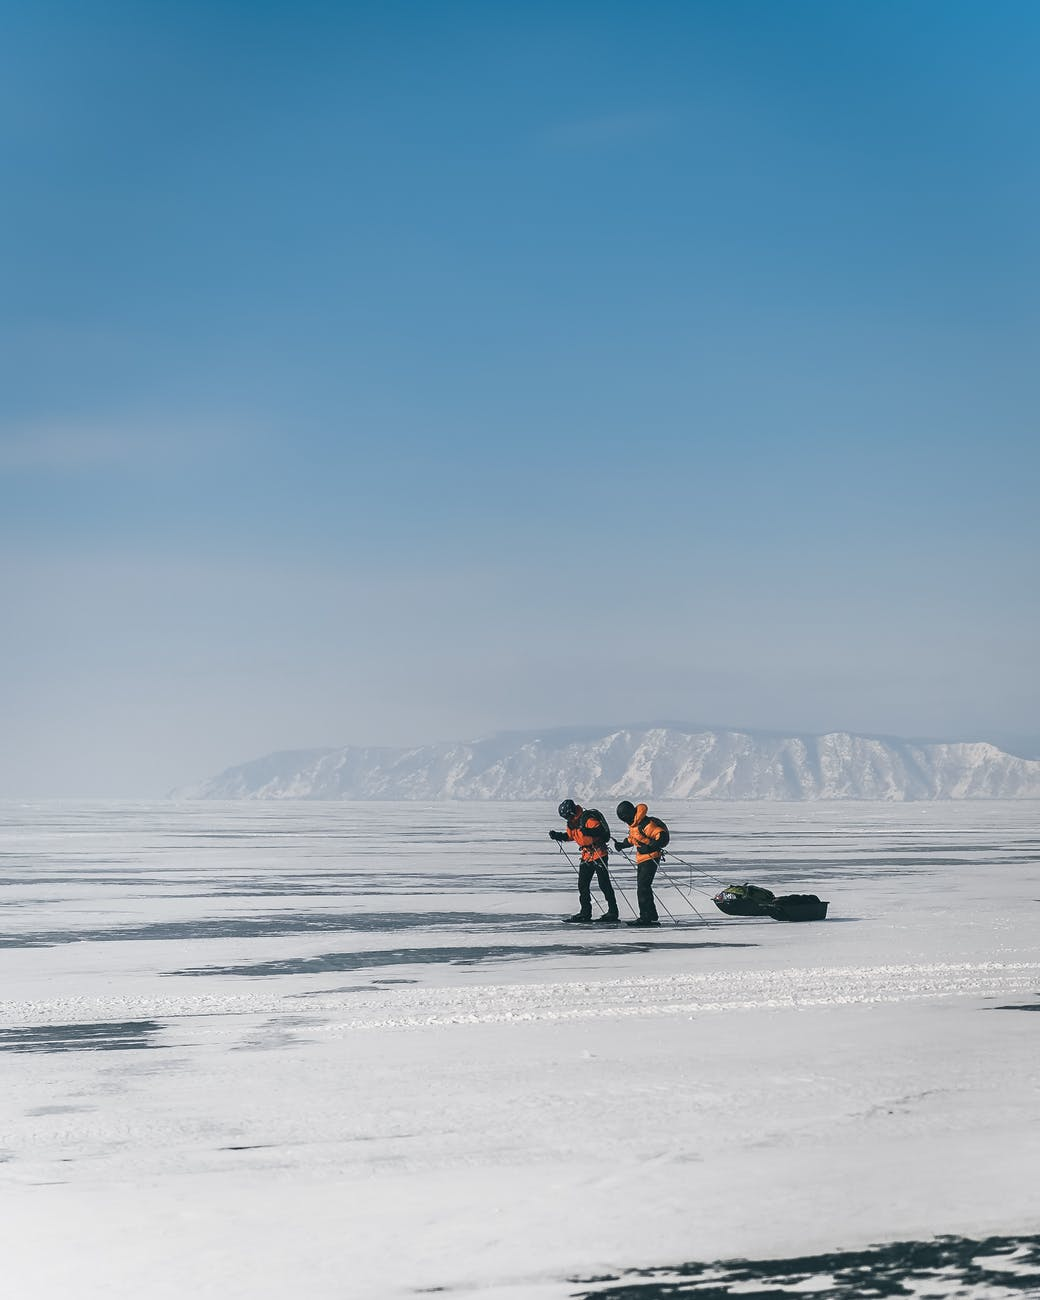 unrecognizable backpackers skiing on frozen lake in winter